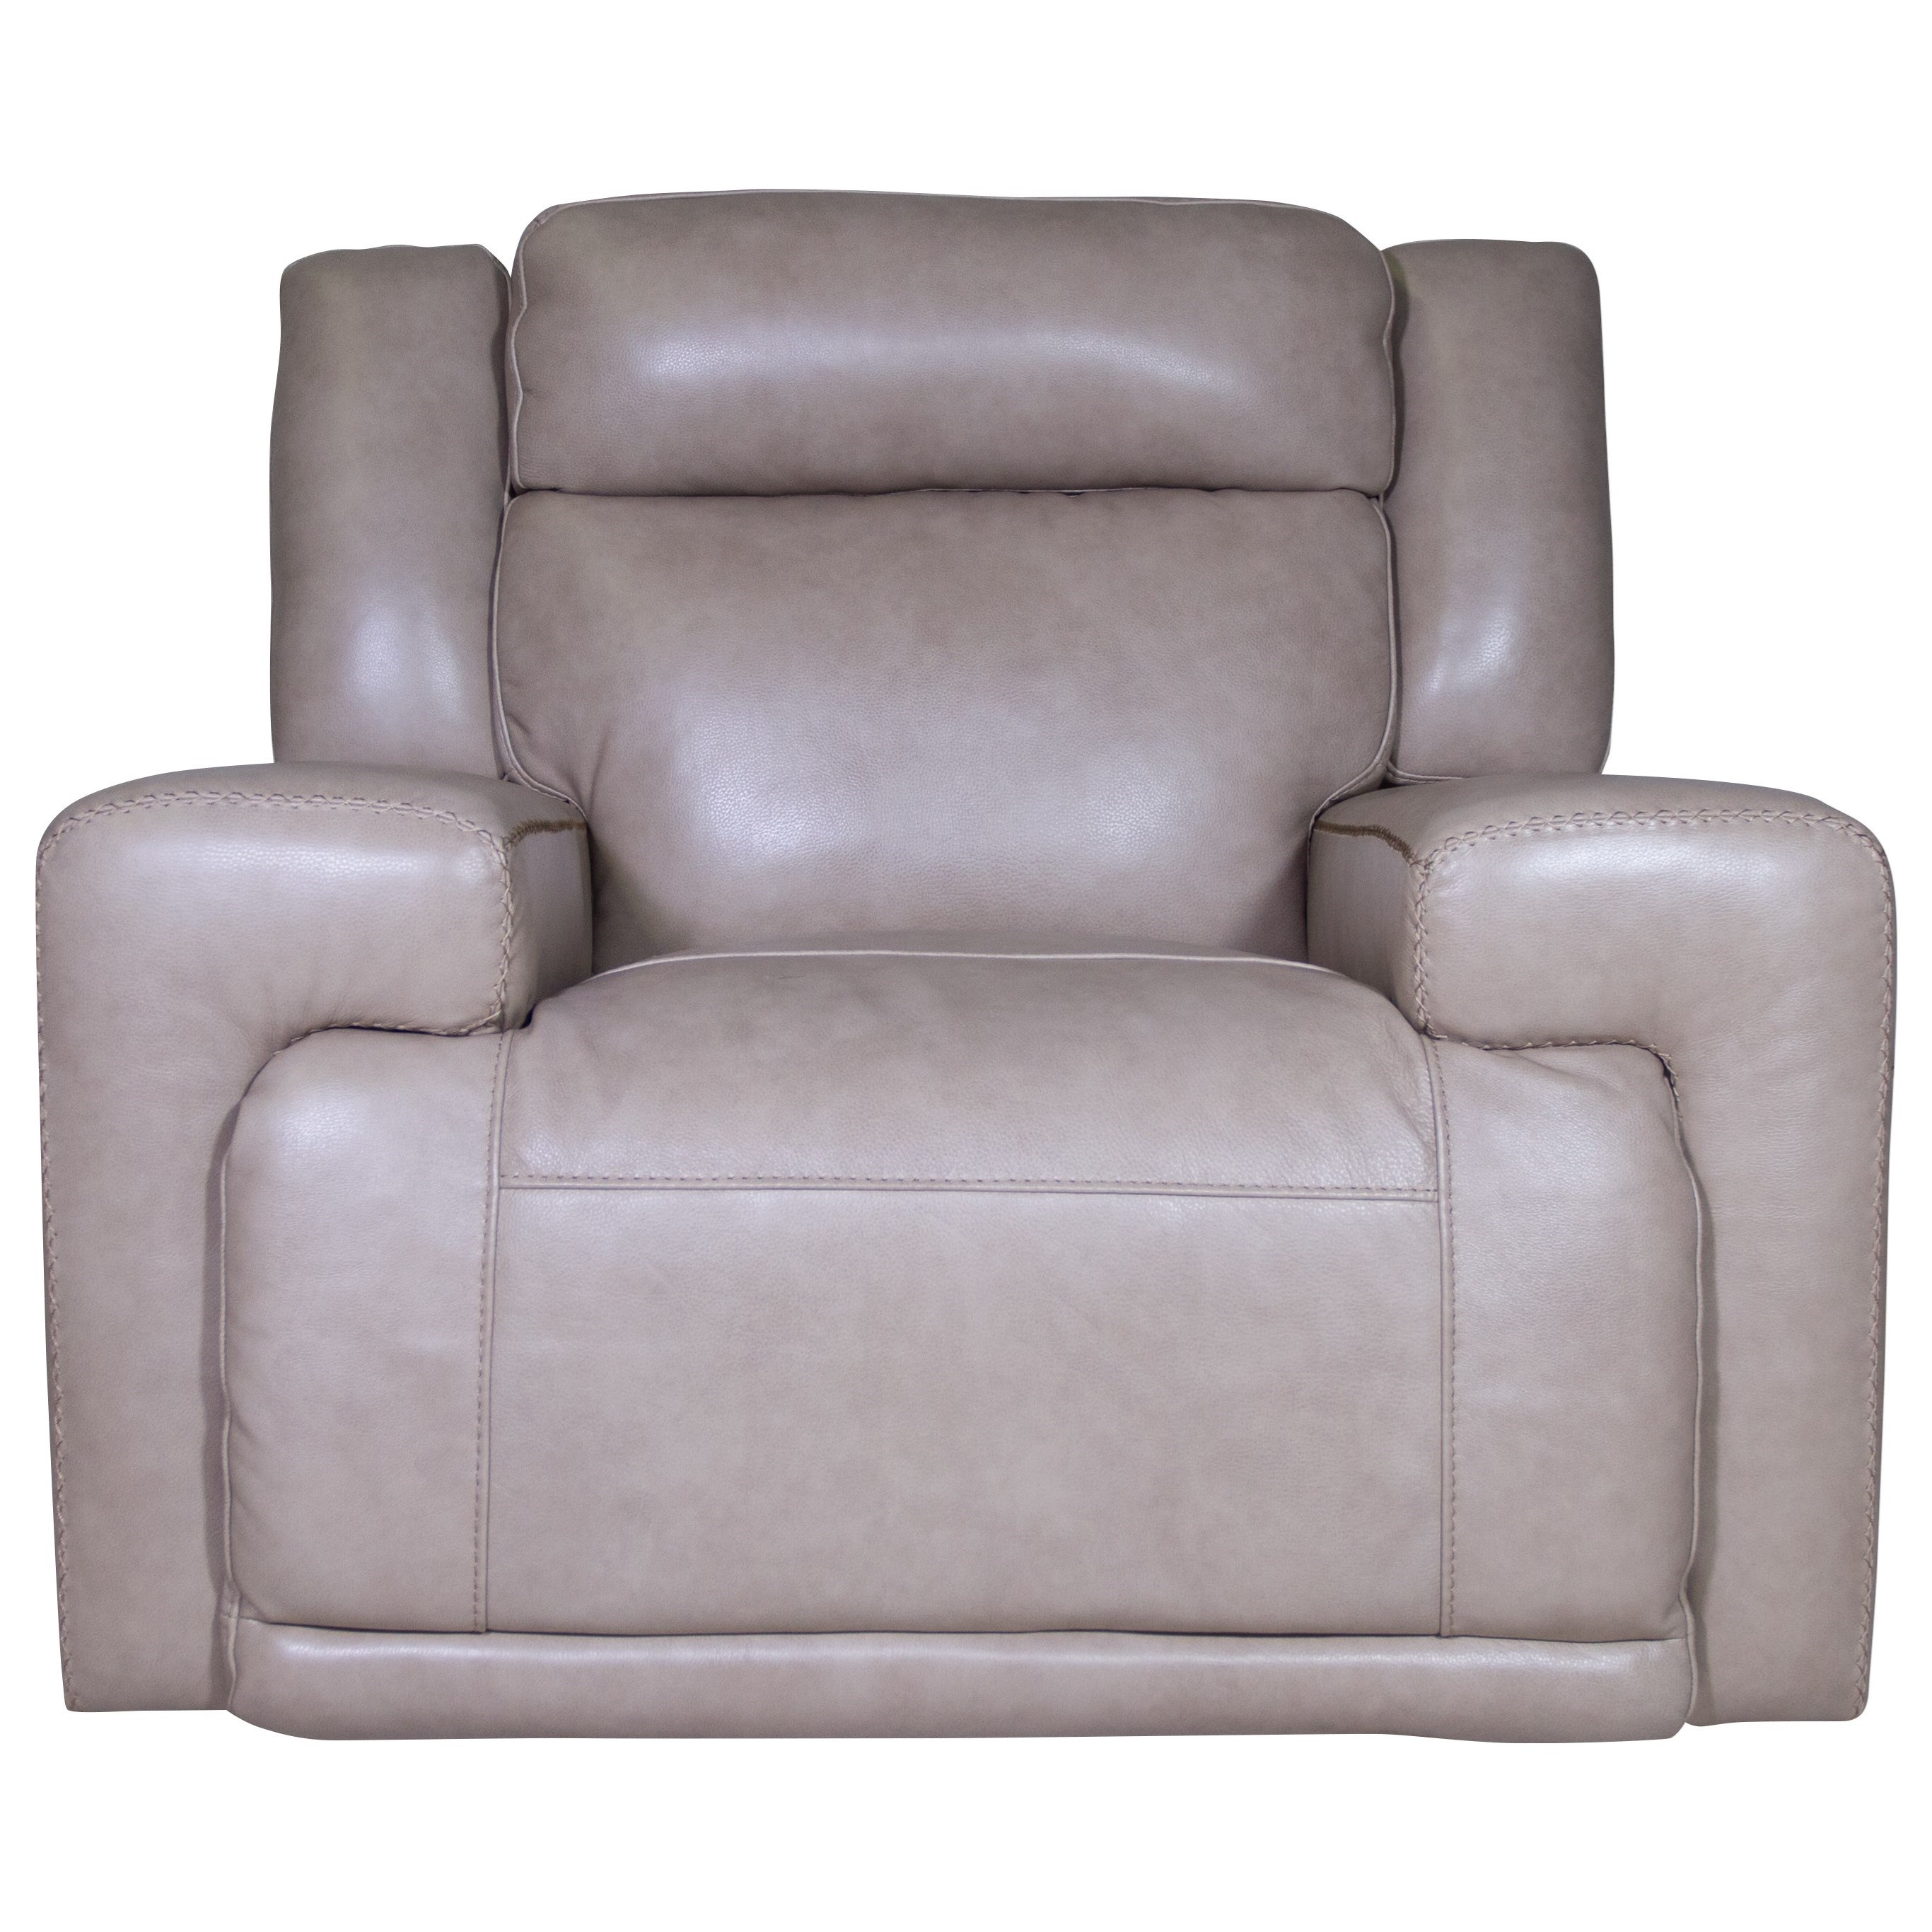 Futura Leather Burke Power Recliner - Item Number: E1259-319-1424H